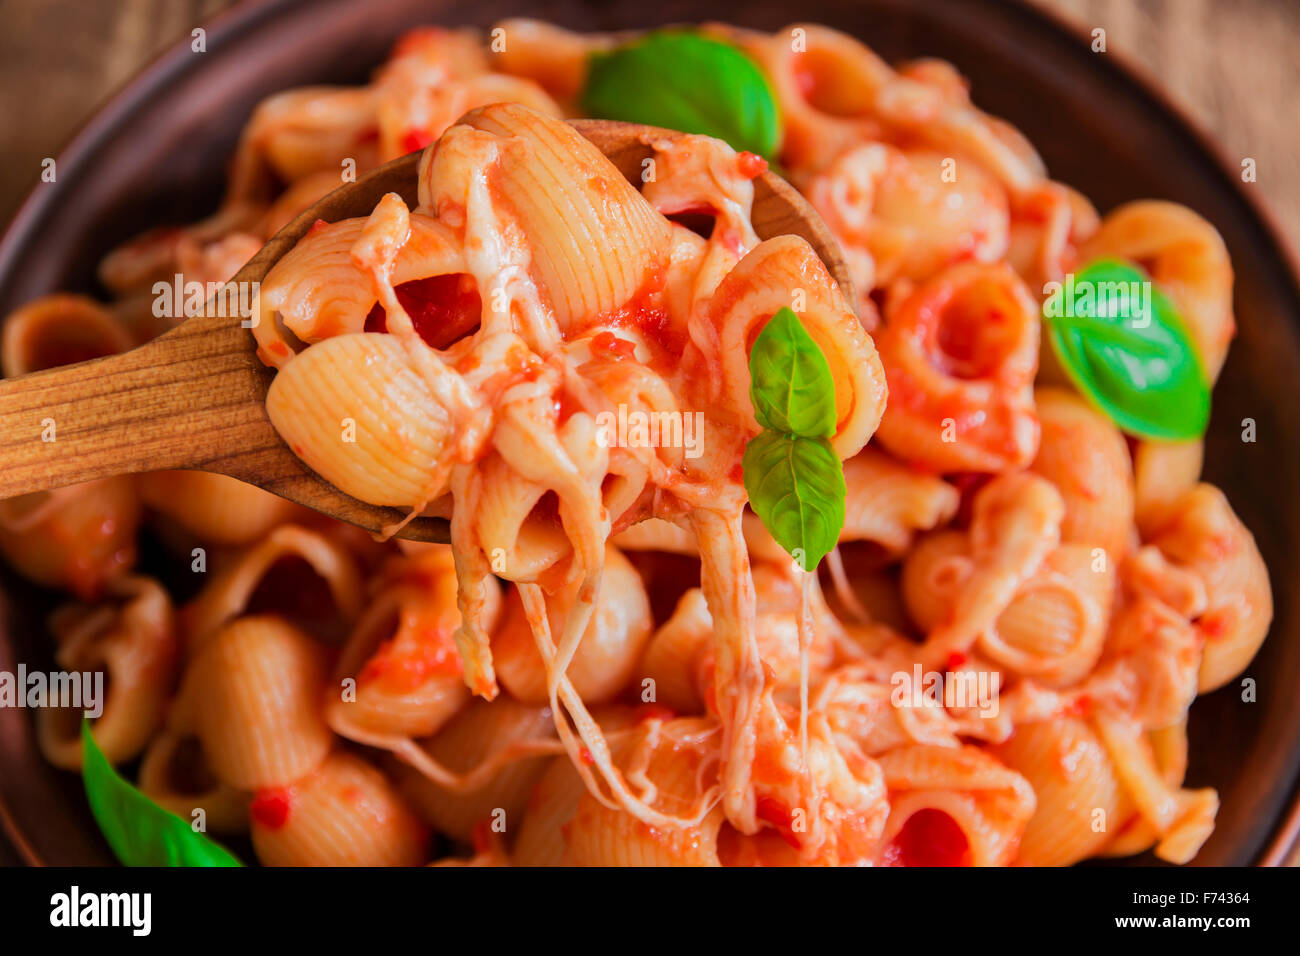 pasta with tomato sauce and cheese - Stock Image